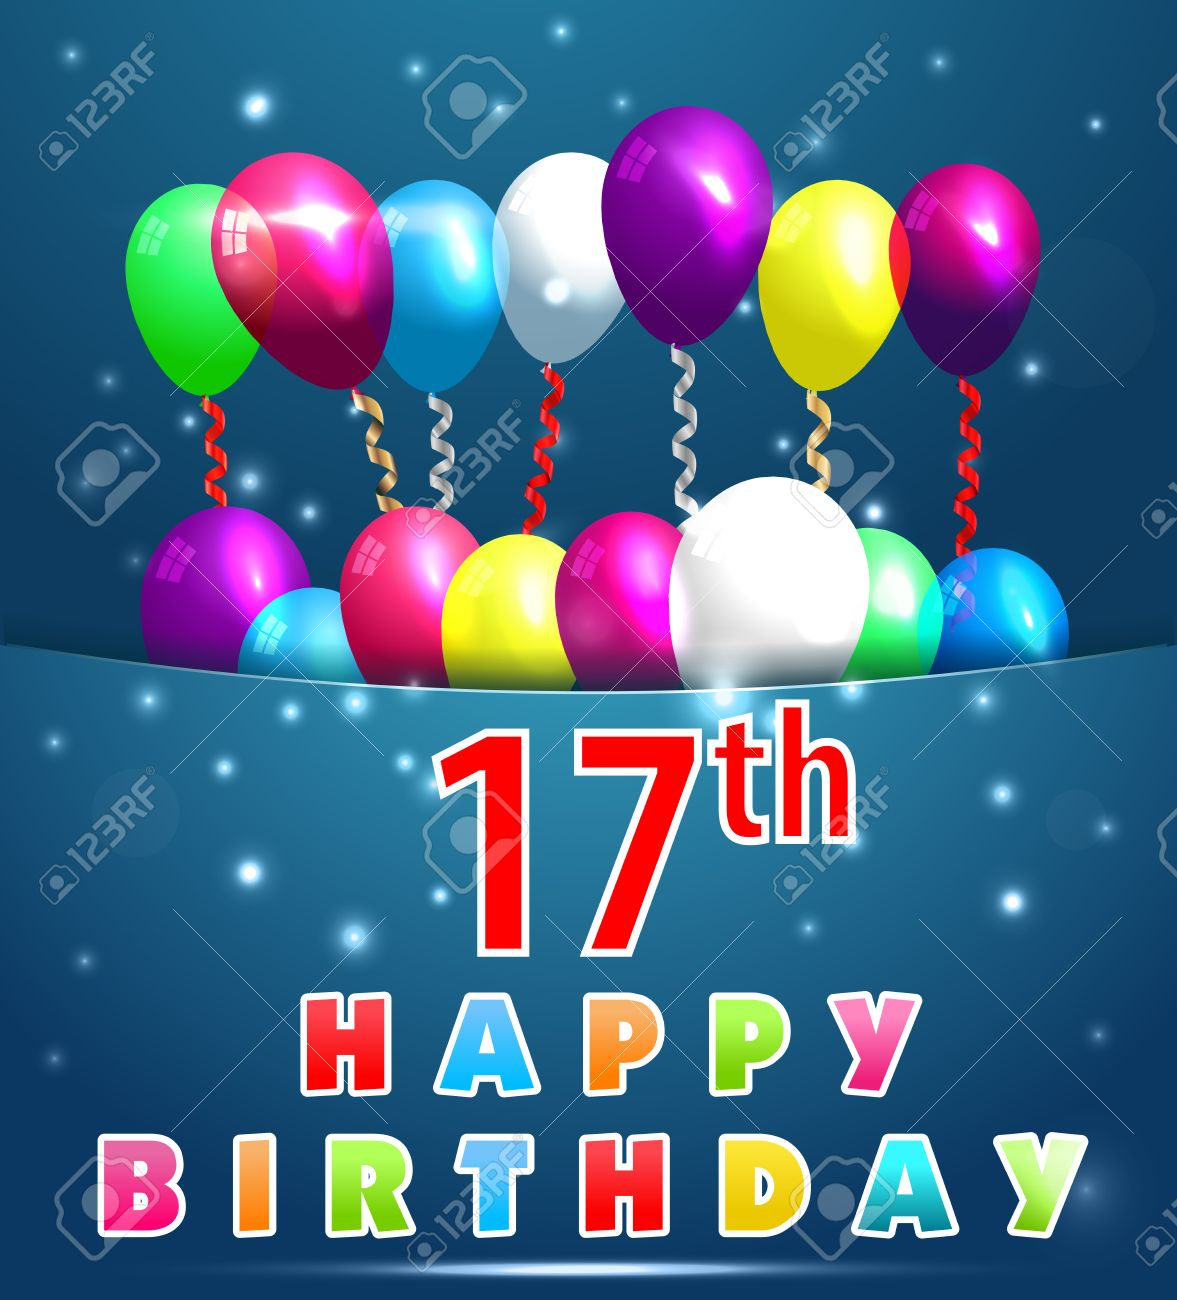 17 Year Happy Birthday Card With Balloons And Ribbons 17th Stock Vector